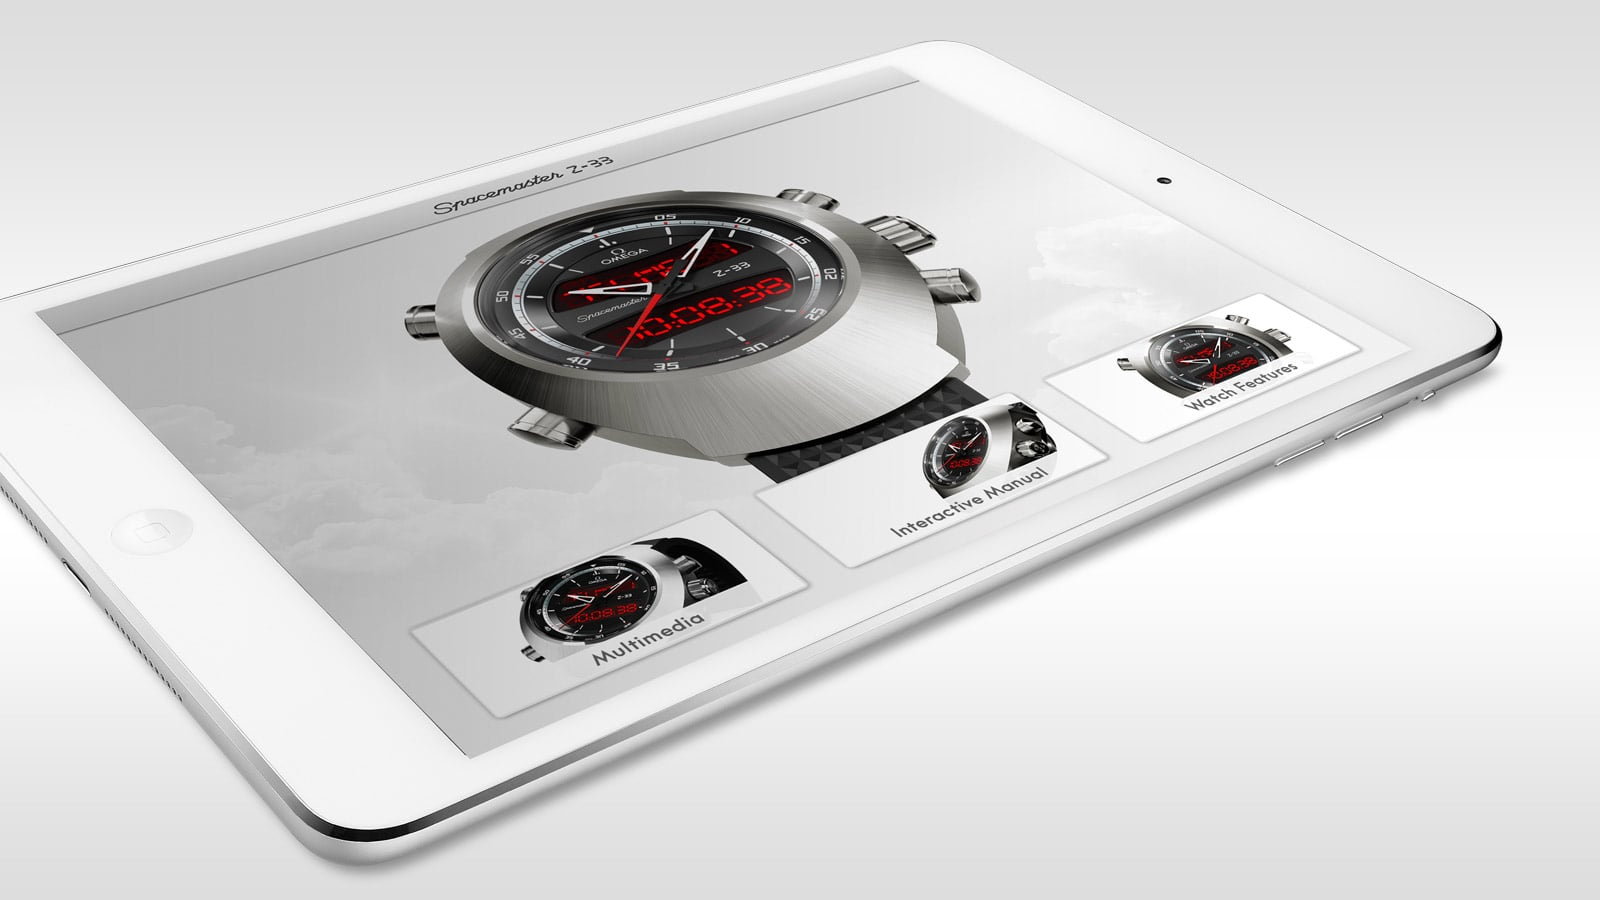 Close-up view of an 8 inches white Ipad with the application for the Omega Spacemaster Z 33 launched